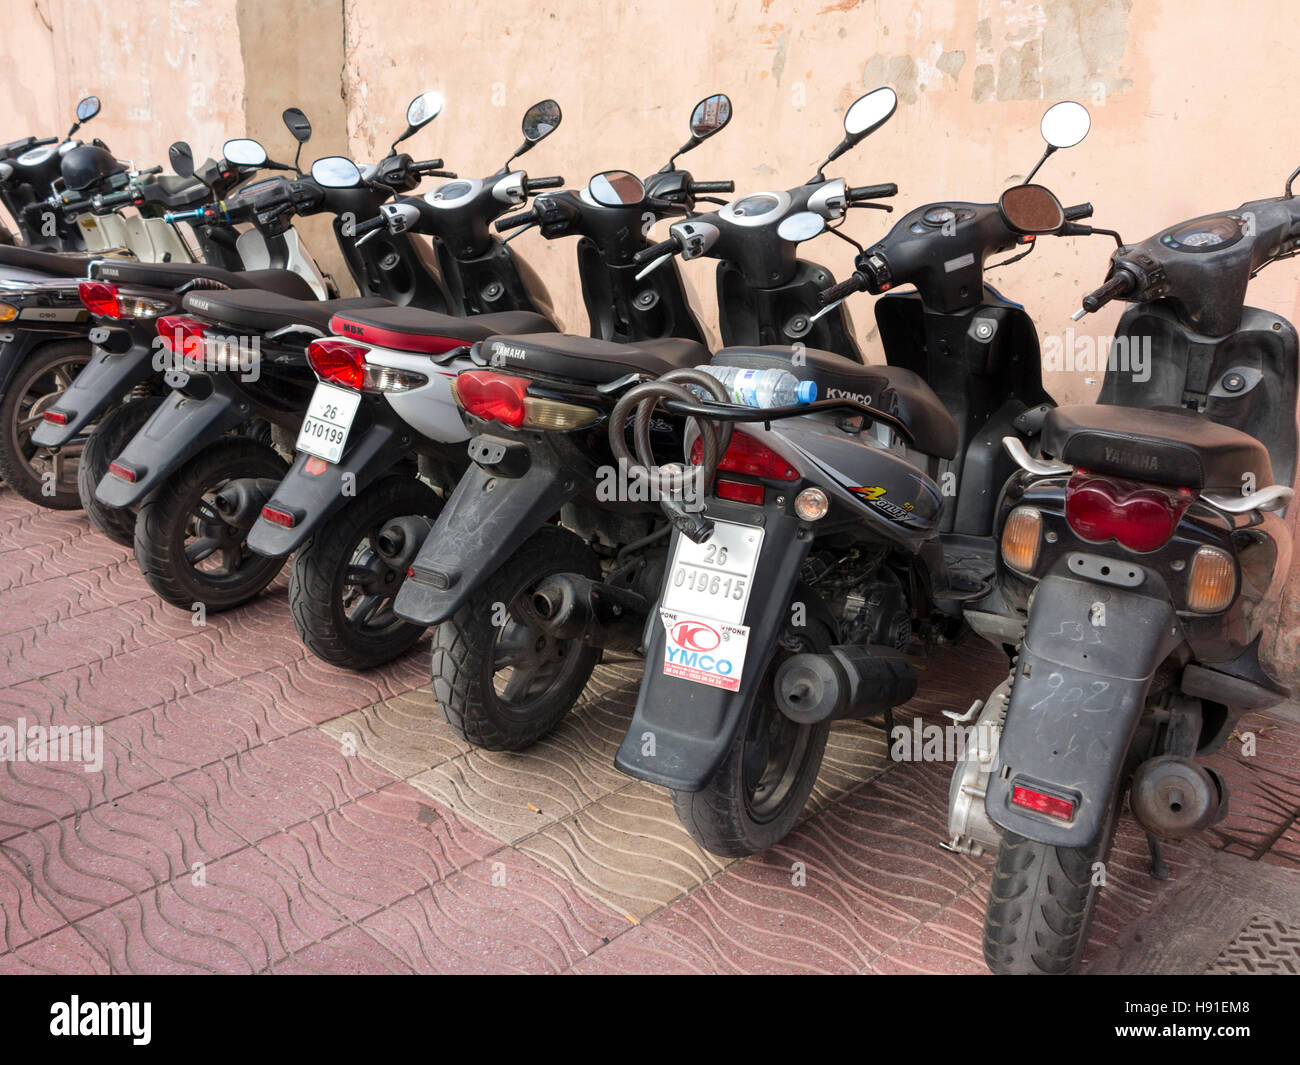 A row of neatly parked motor scooters on a Moroccan street pavement against a plain wall - Stock Image